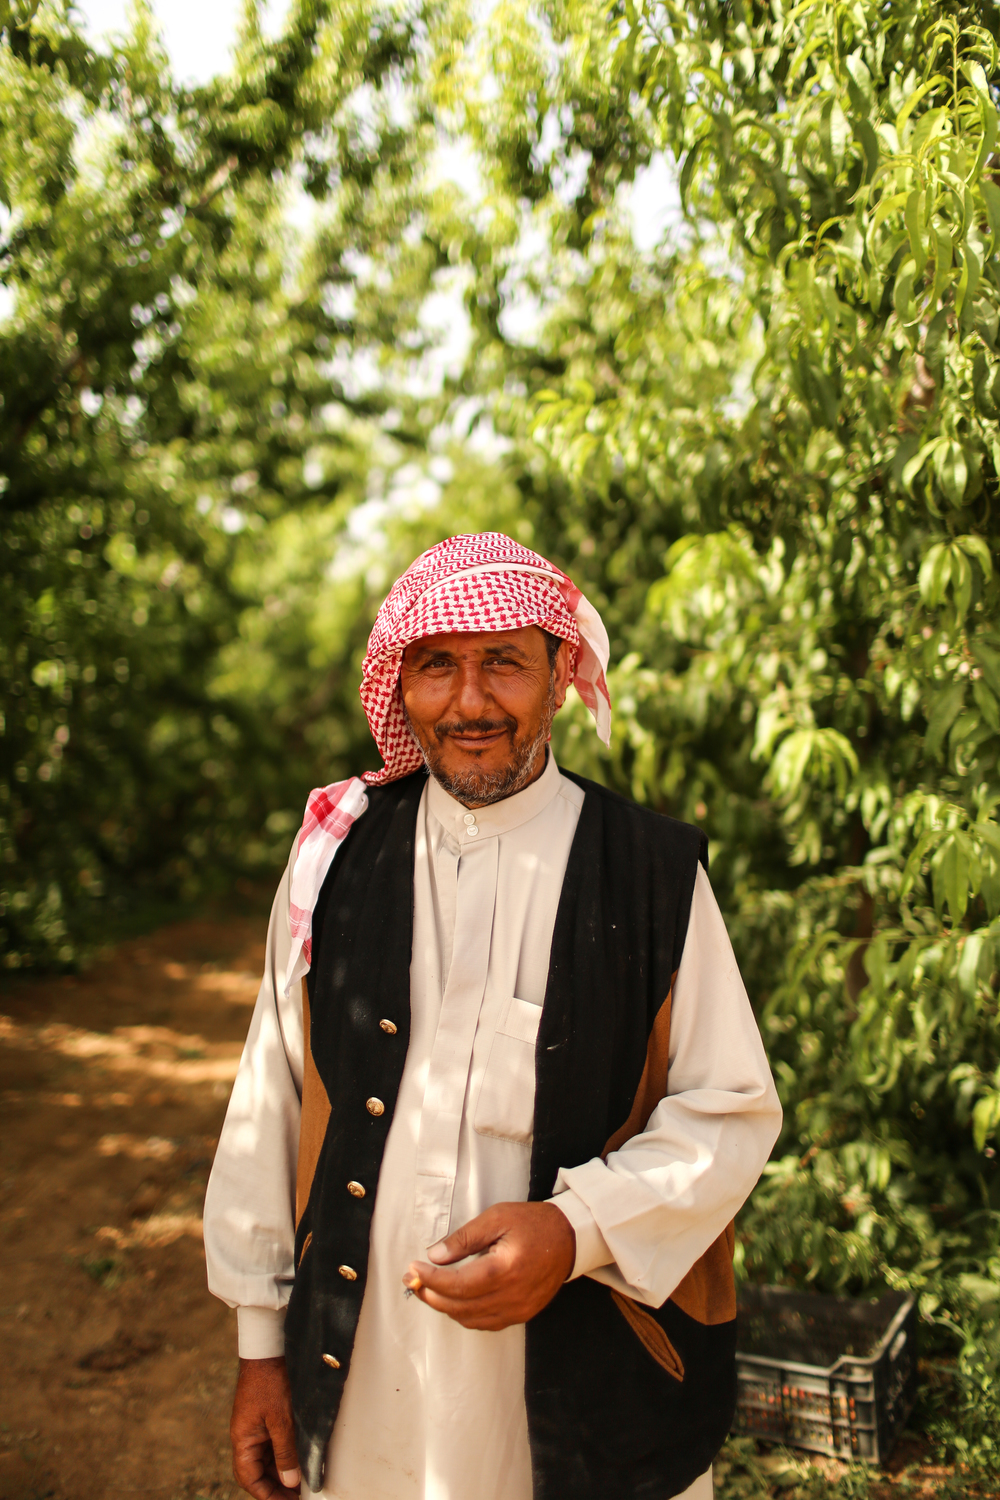 A Syrian refugee fruit farmer in Mafraq, Jordan.